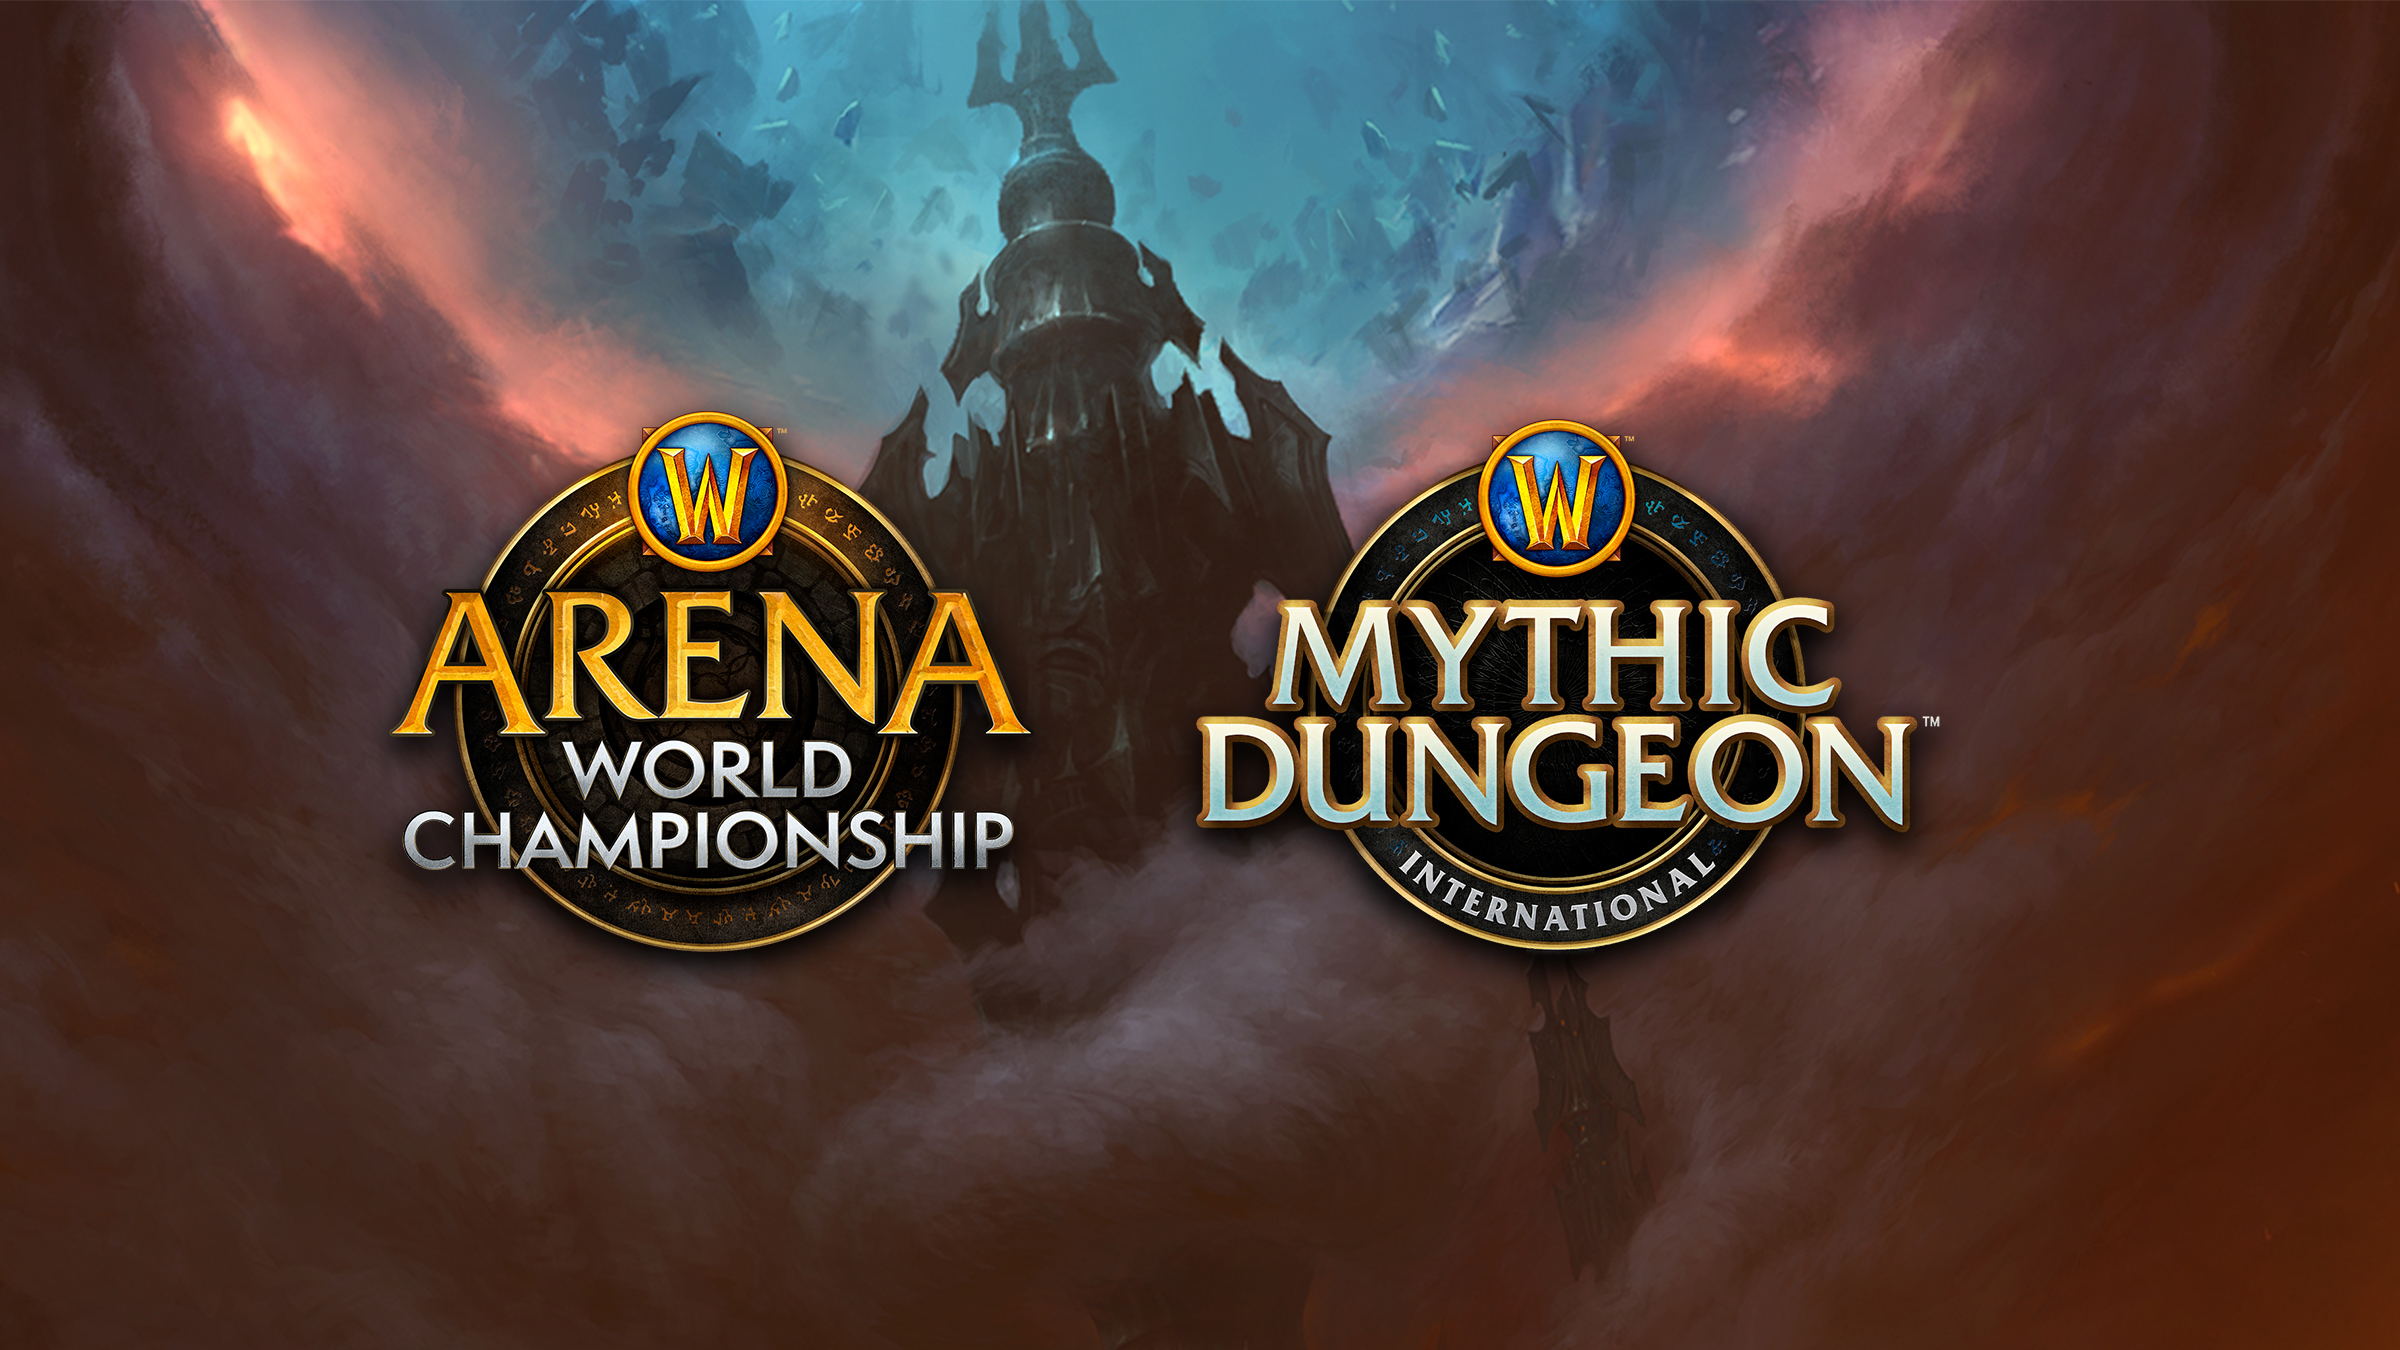 ¡Aquí están los planes para el Arena World Championship y el Mythic Dungeon International de 2021!